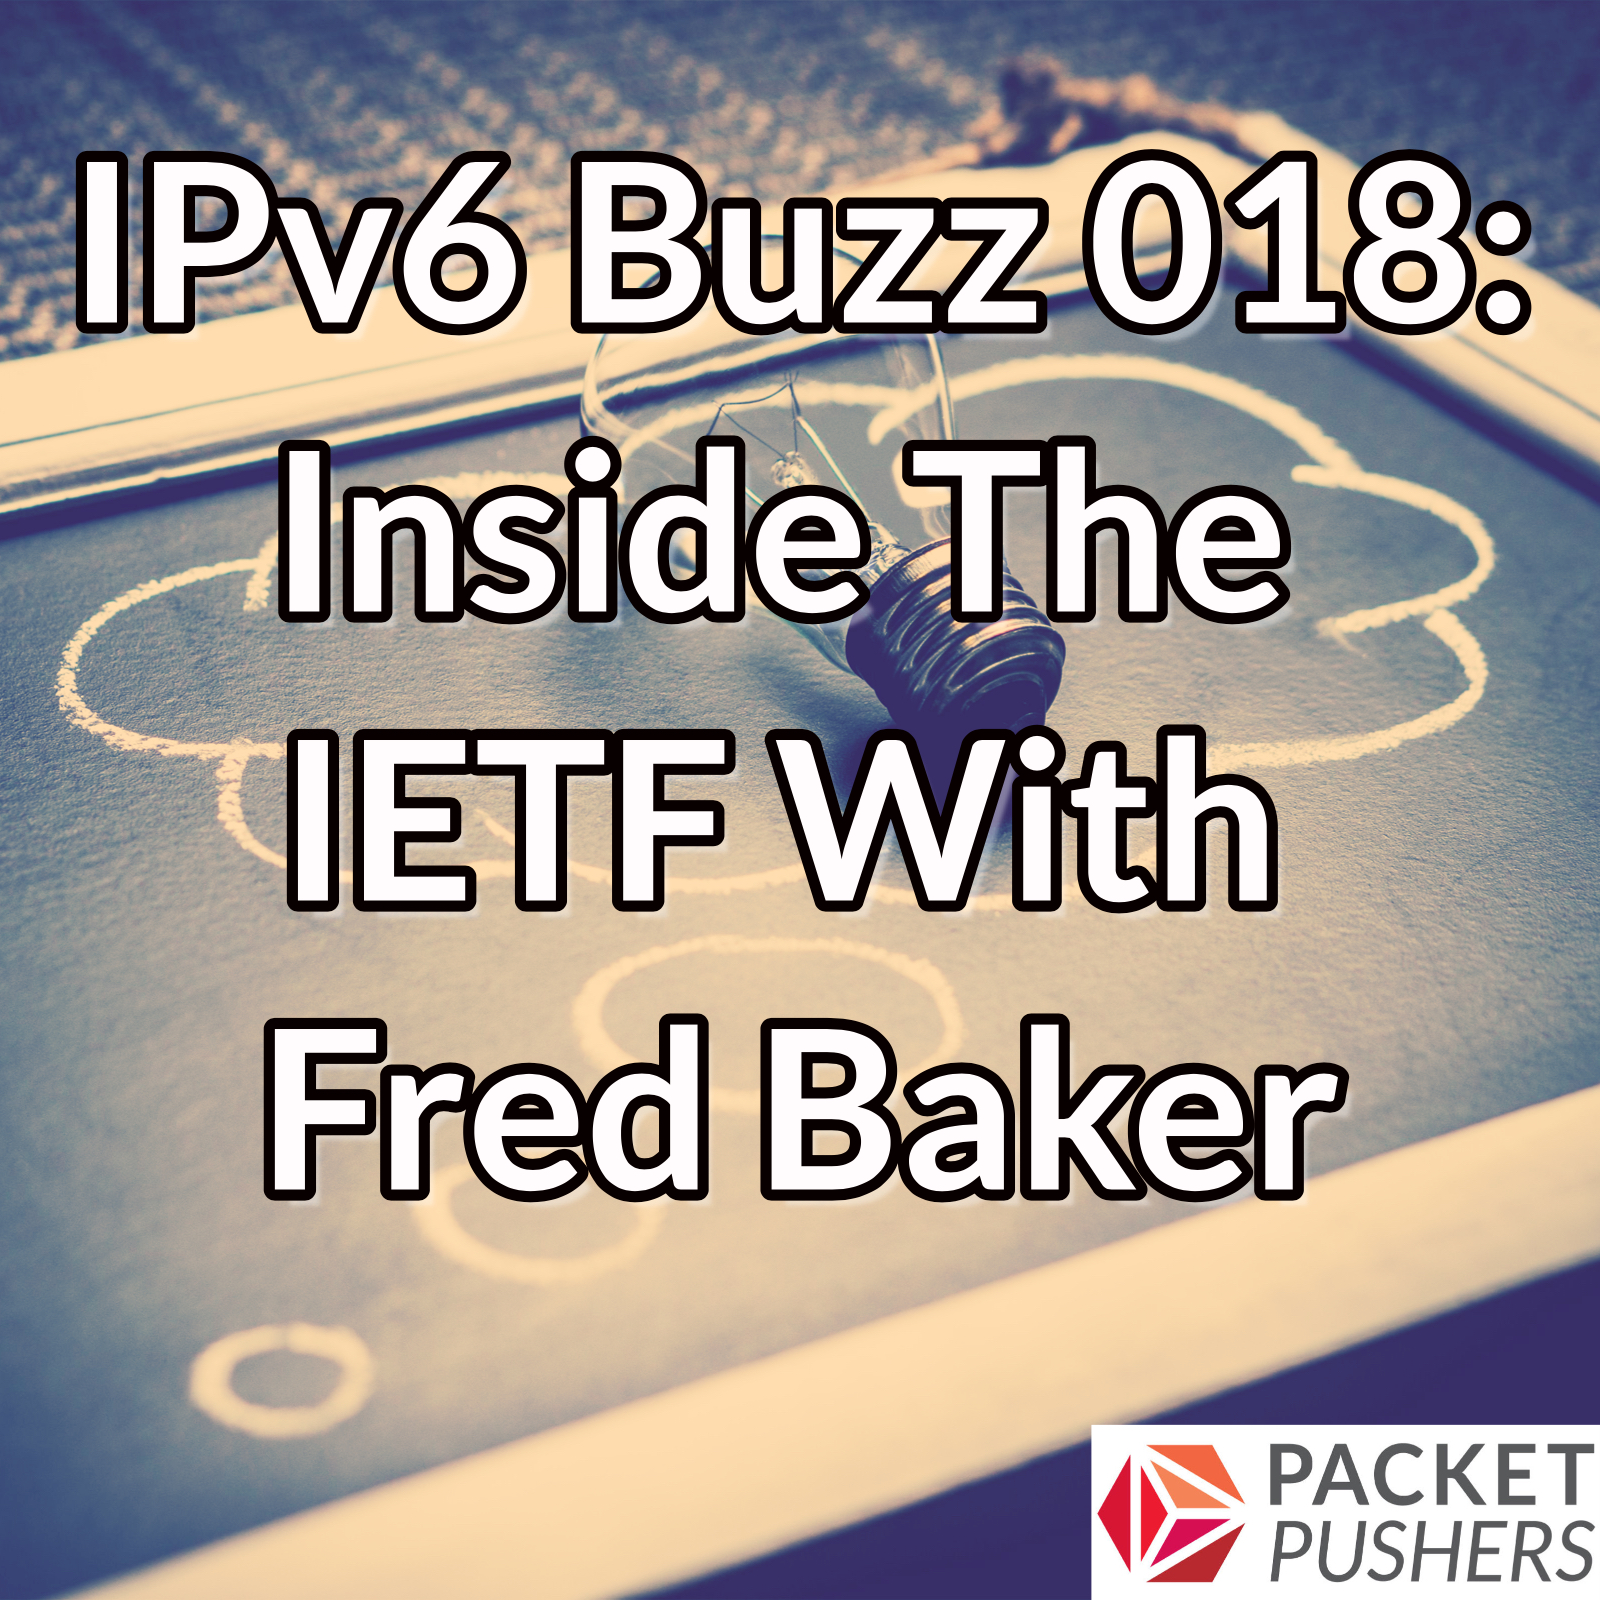 Inside the IETF with Fred Baker